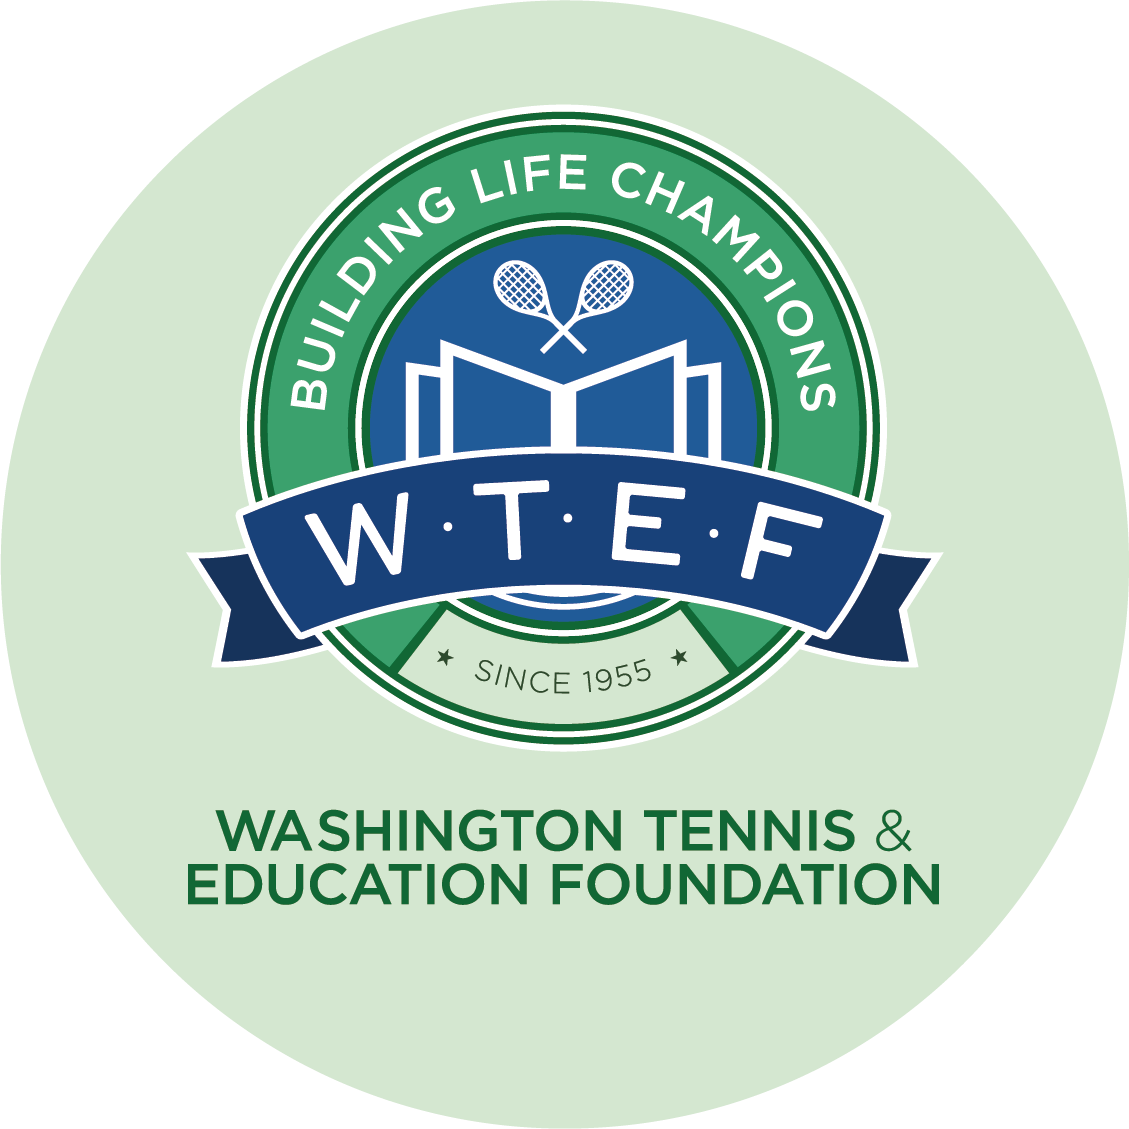 Washington Tennis & Education Foundation logo